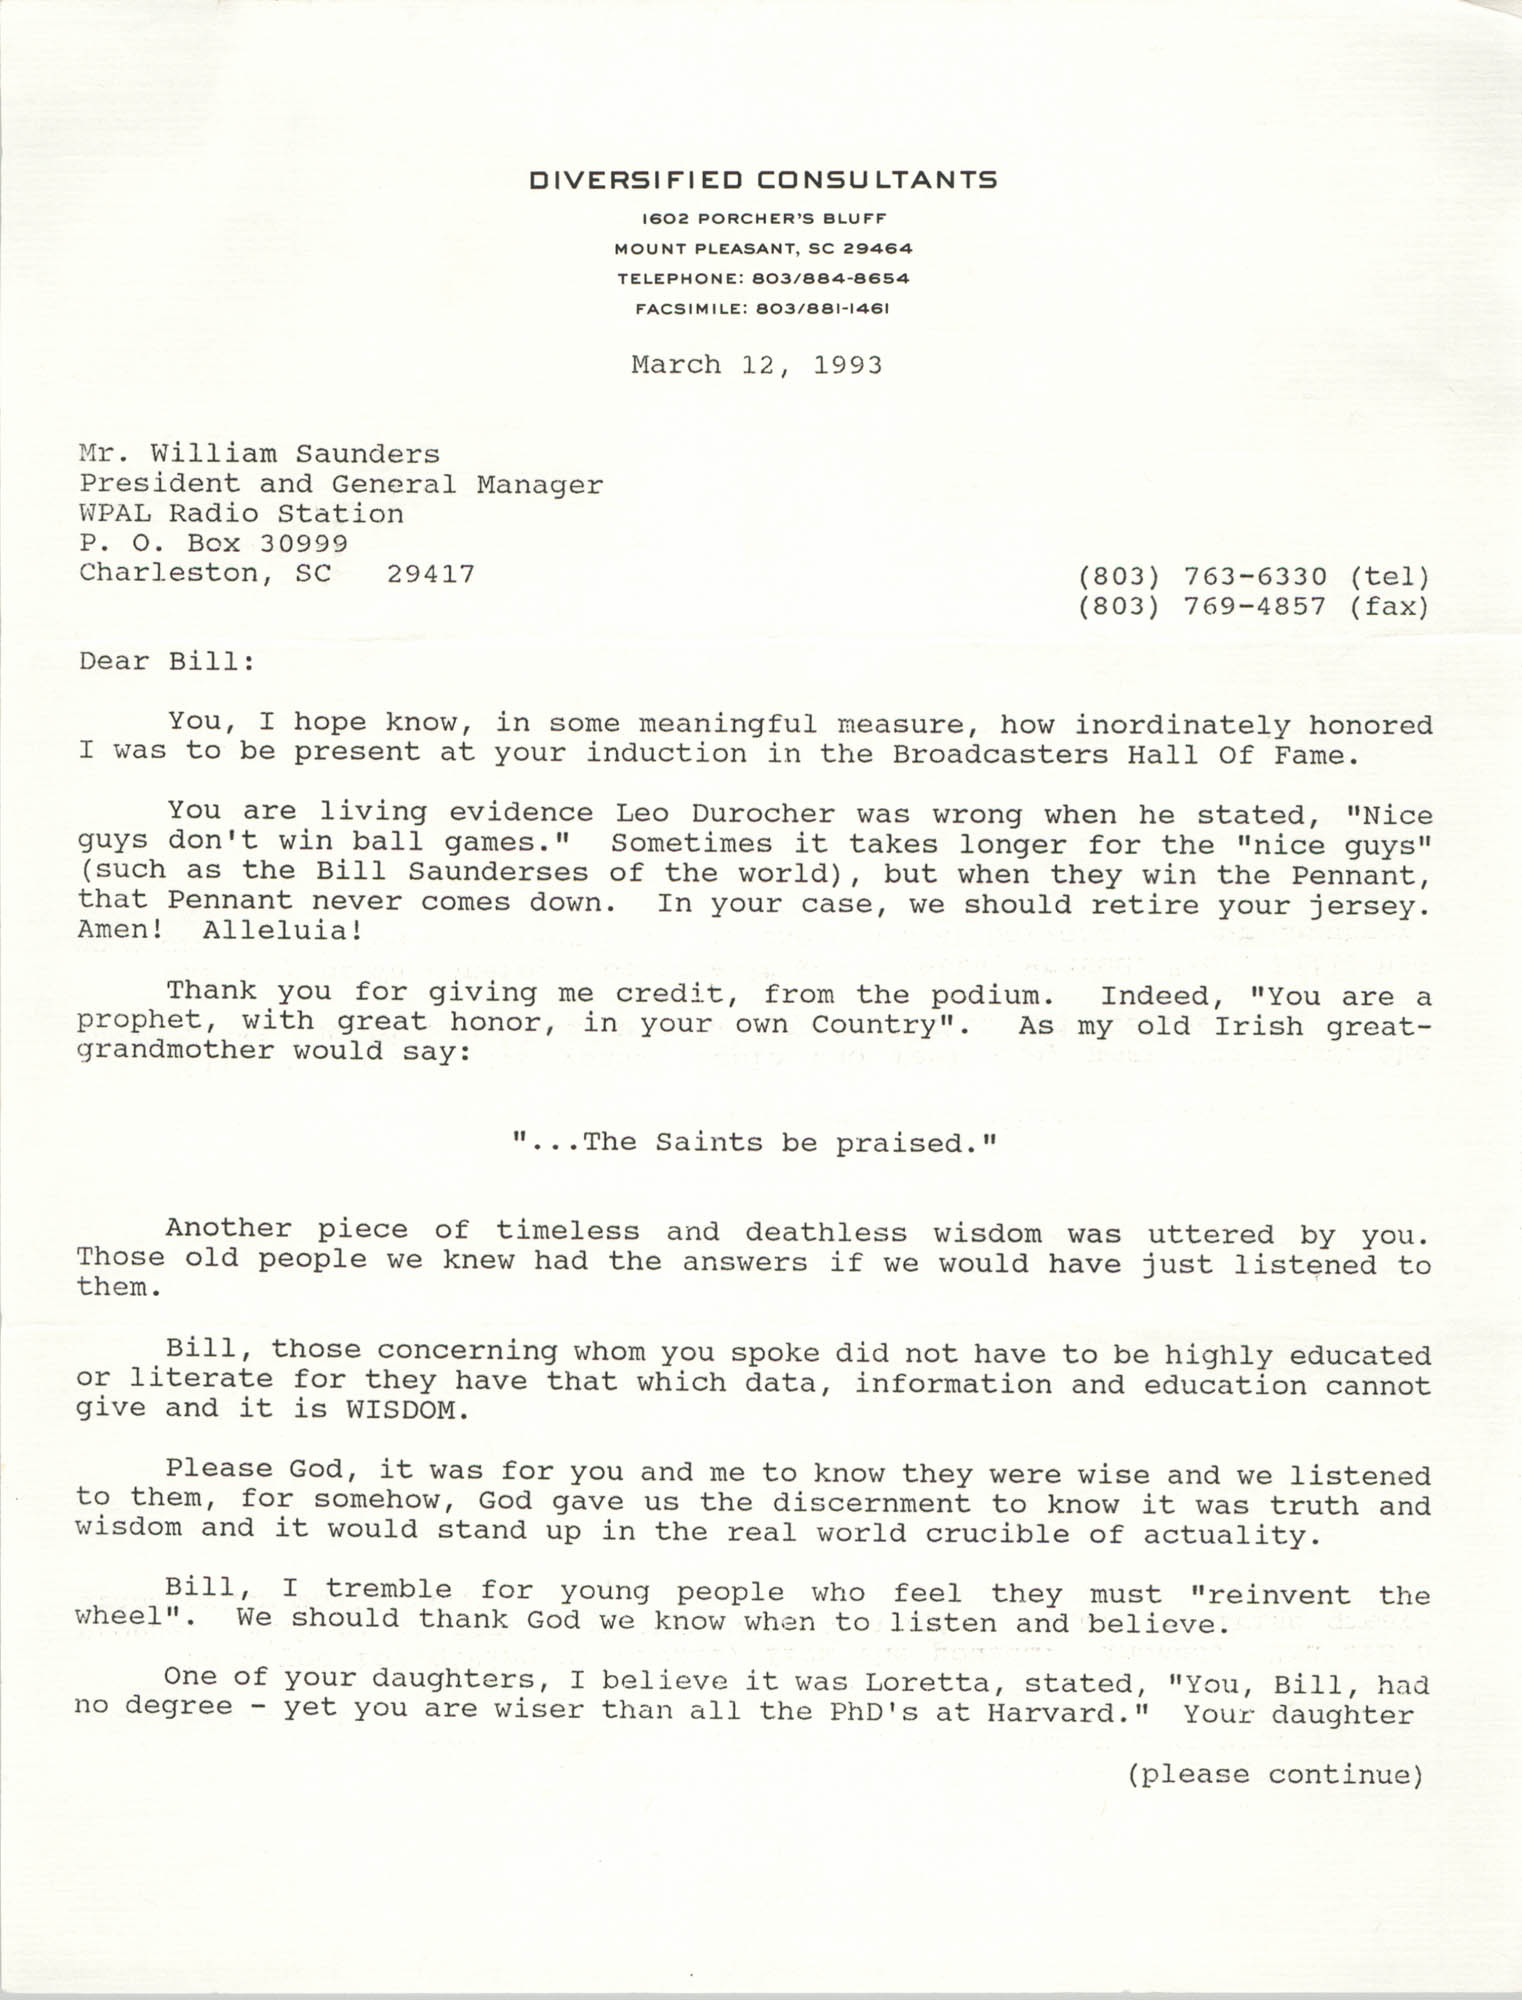 Letter from J. F. Mahoney to William Saunders, March 12, 1993